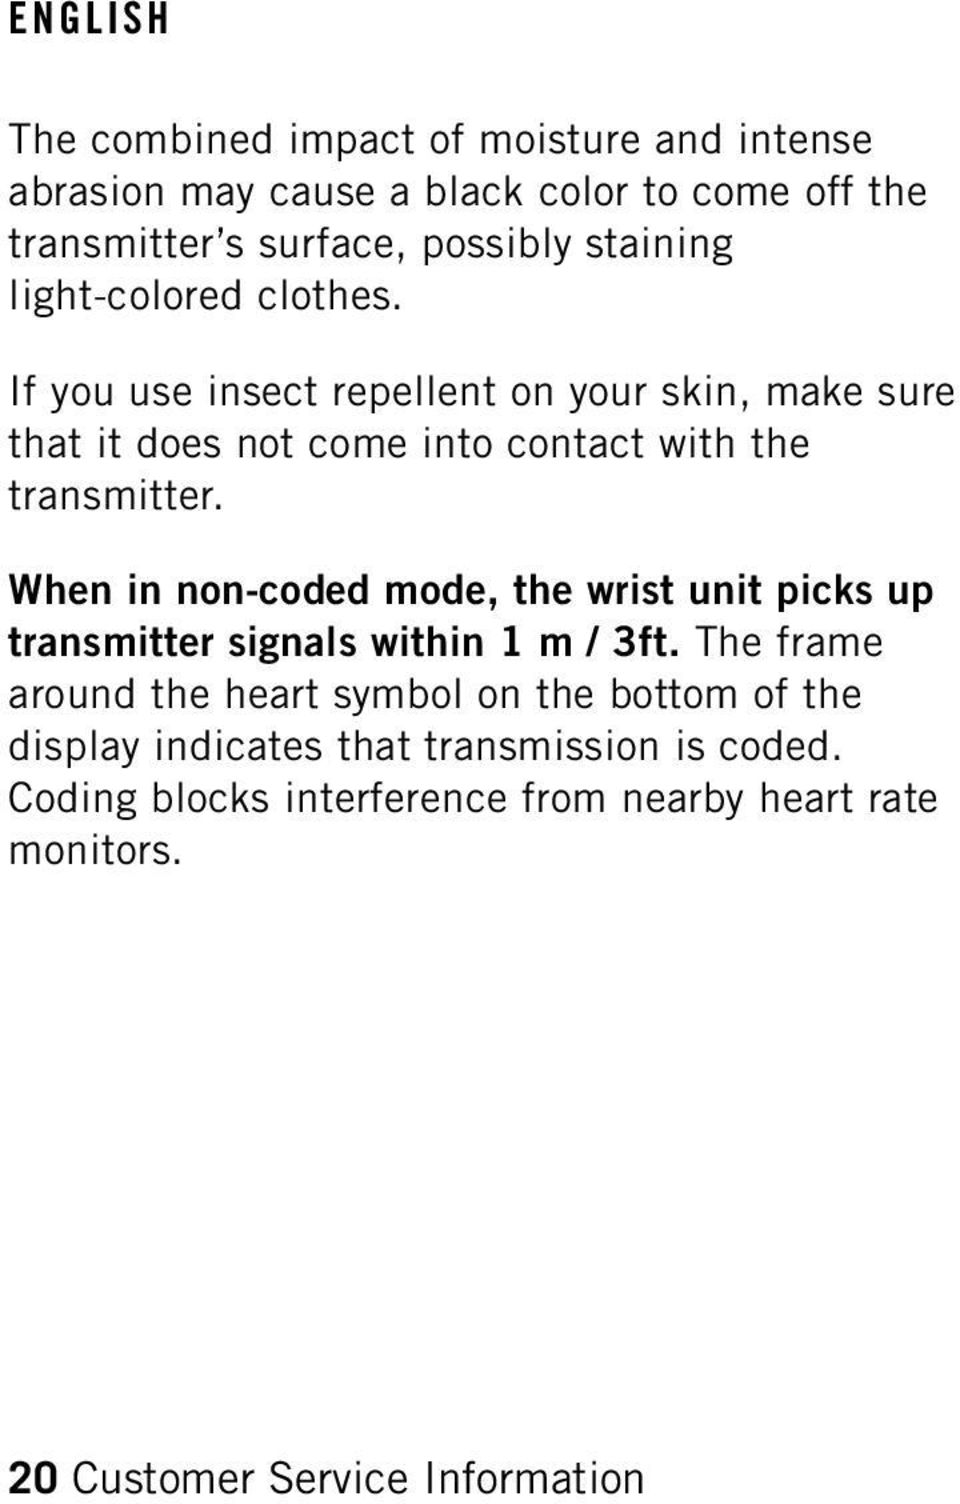 When in non-coded mode, the wrist unit picks up transmitter signals within 1 m / 3ft.